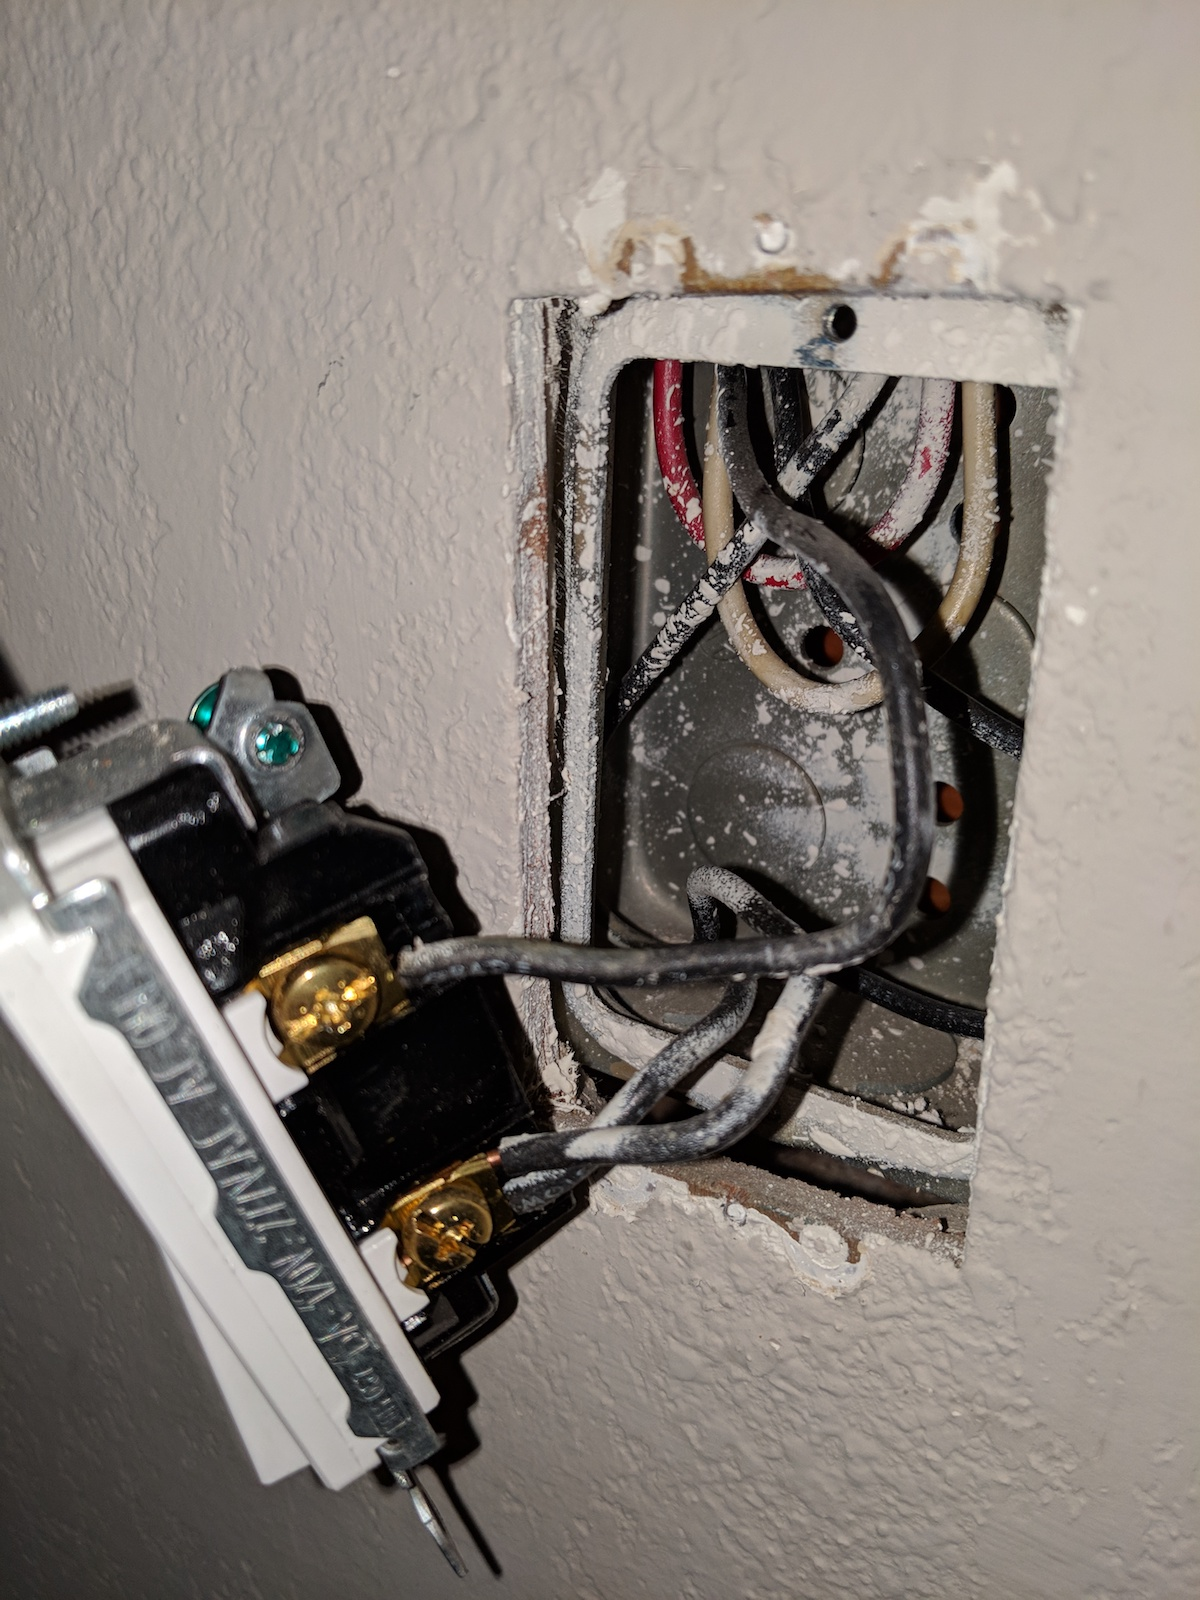 hight resolution of i am installing a smart switch so i need a neutral i am a bit confused which wire is which in my wall switch box below is a picture of the wires